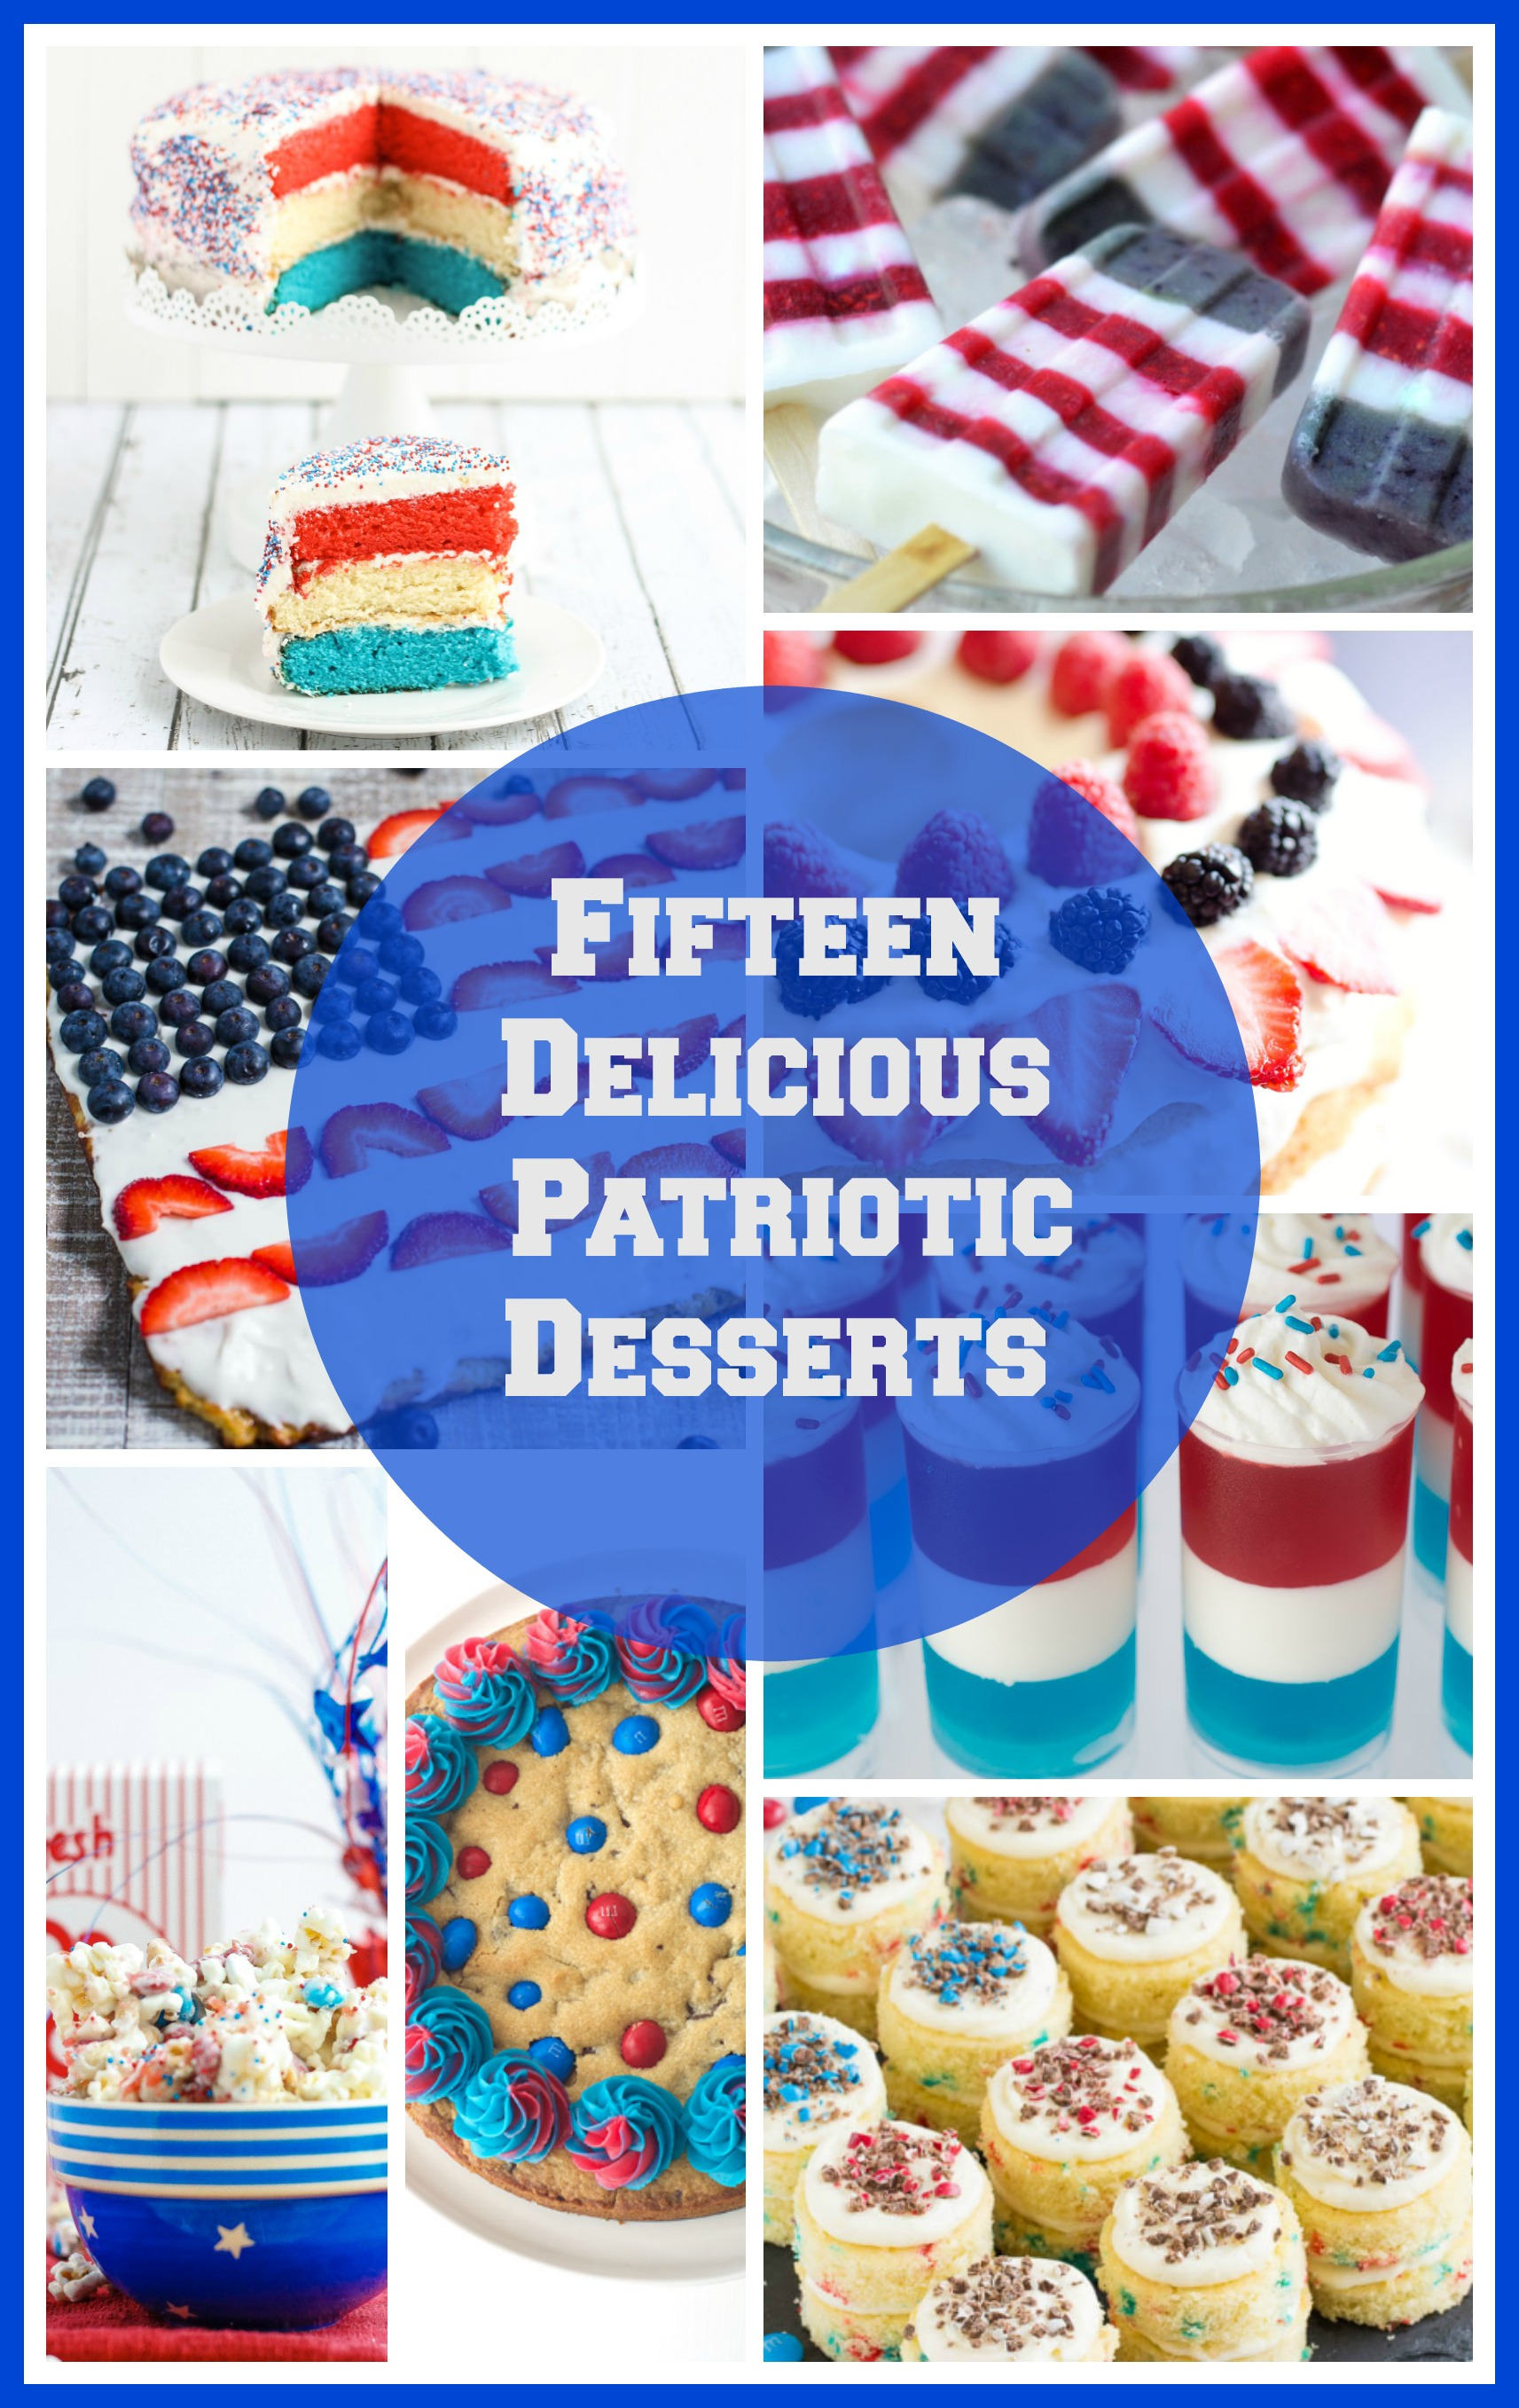 Fifteen Amazing Red, White, and Blue Desserts! Perfect if you need an easy recipe for Memorial Day or the 4th of July!